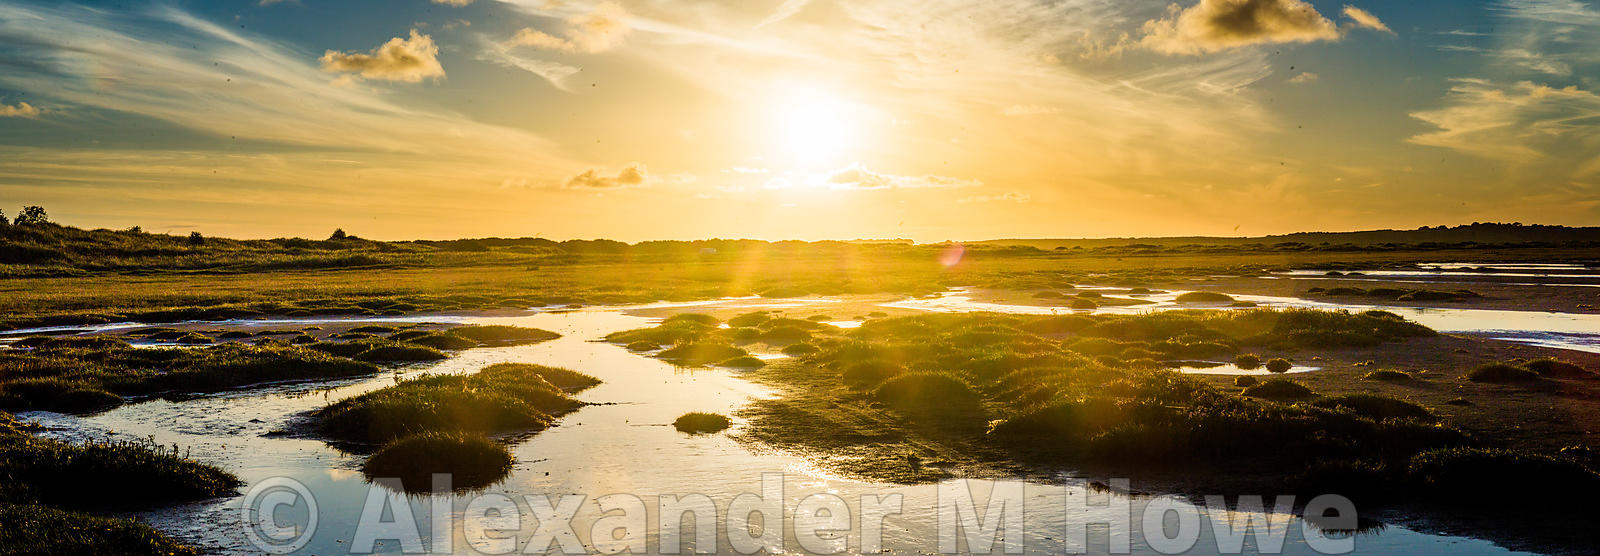 Low Tide axcross Donegal Bay with a golden sunset across the water